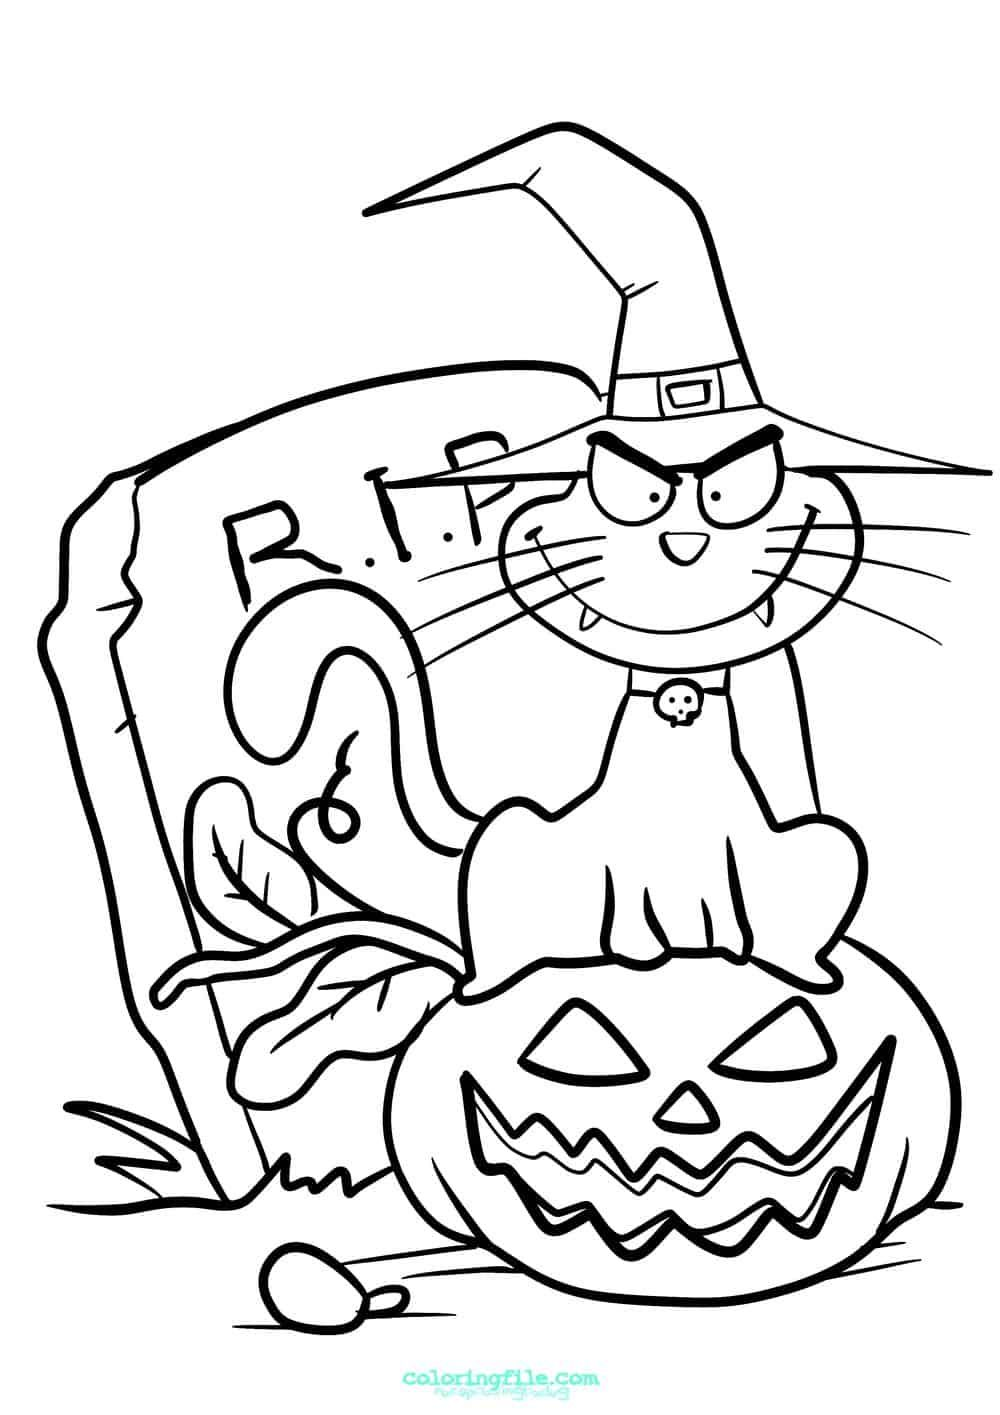 Pumpkin Halloween Cat Coloring Pages #1906 Halloween Cat Coloring ... | 1415x1000